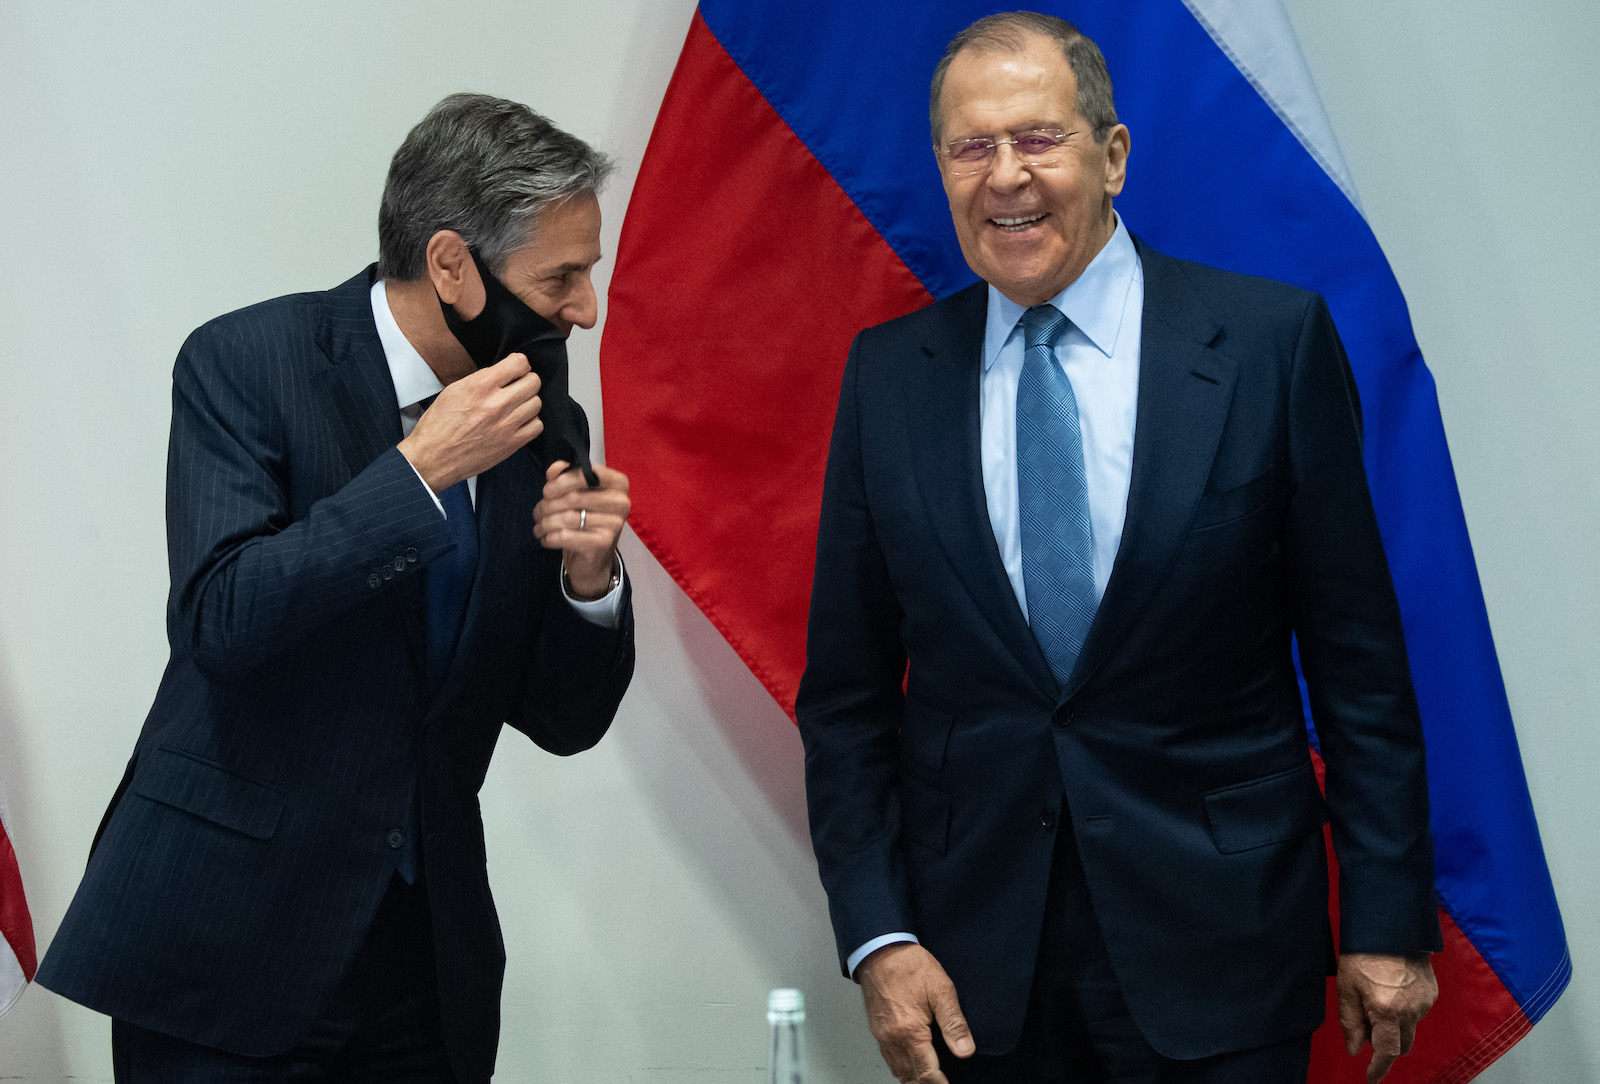 US Secretary of State Antony Blinken and Russian Foreign Minister Sergey Lavrov (right) laugh as they arrive for a meeting at the Harpa Concert Hall in Reykjavik, Iceland, May 19, 2021, on the sidelines of the Arctic Council Ministerial summit. Photo : AFP / Saul Loeb / Pool